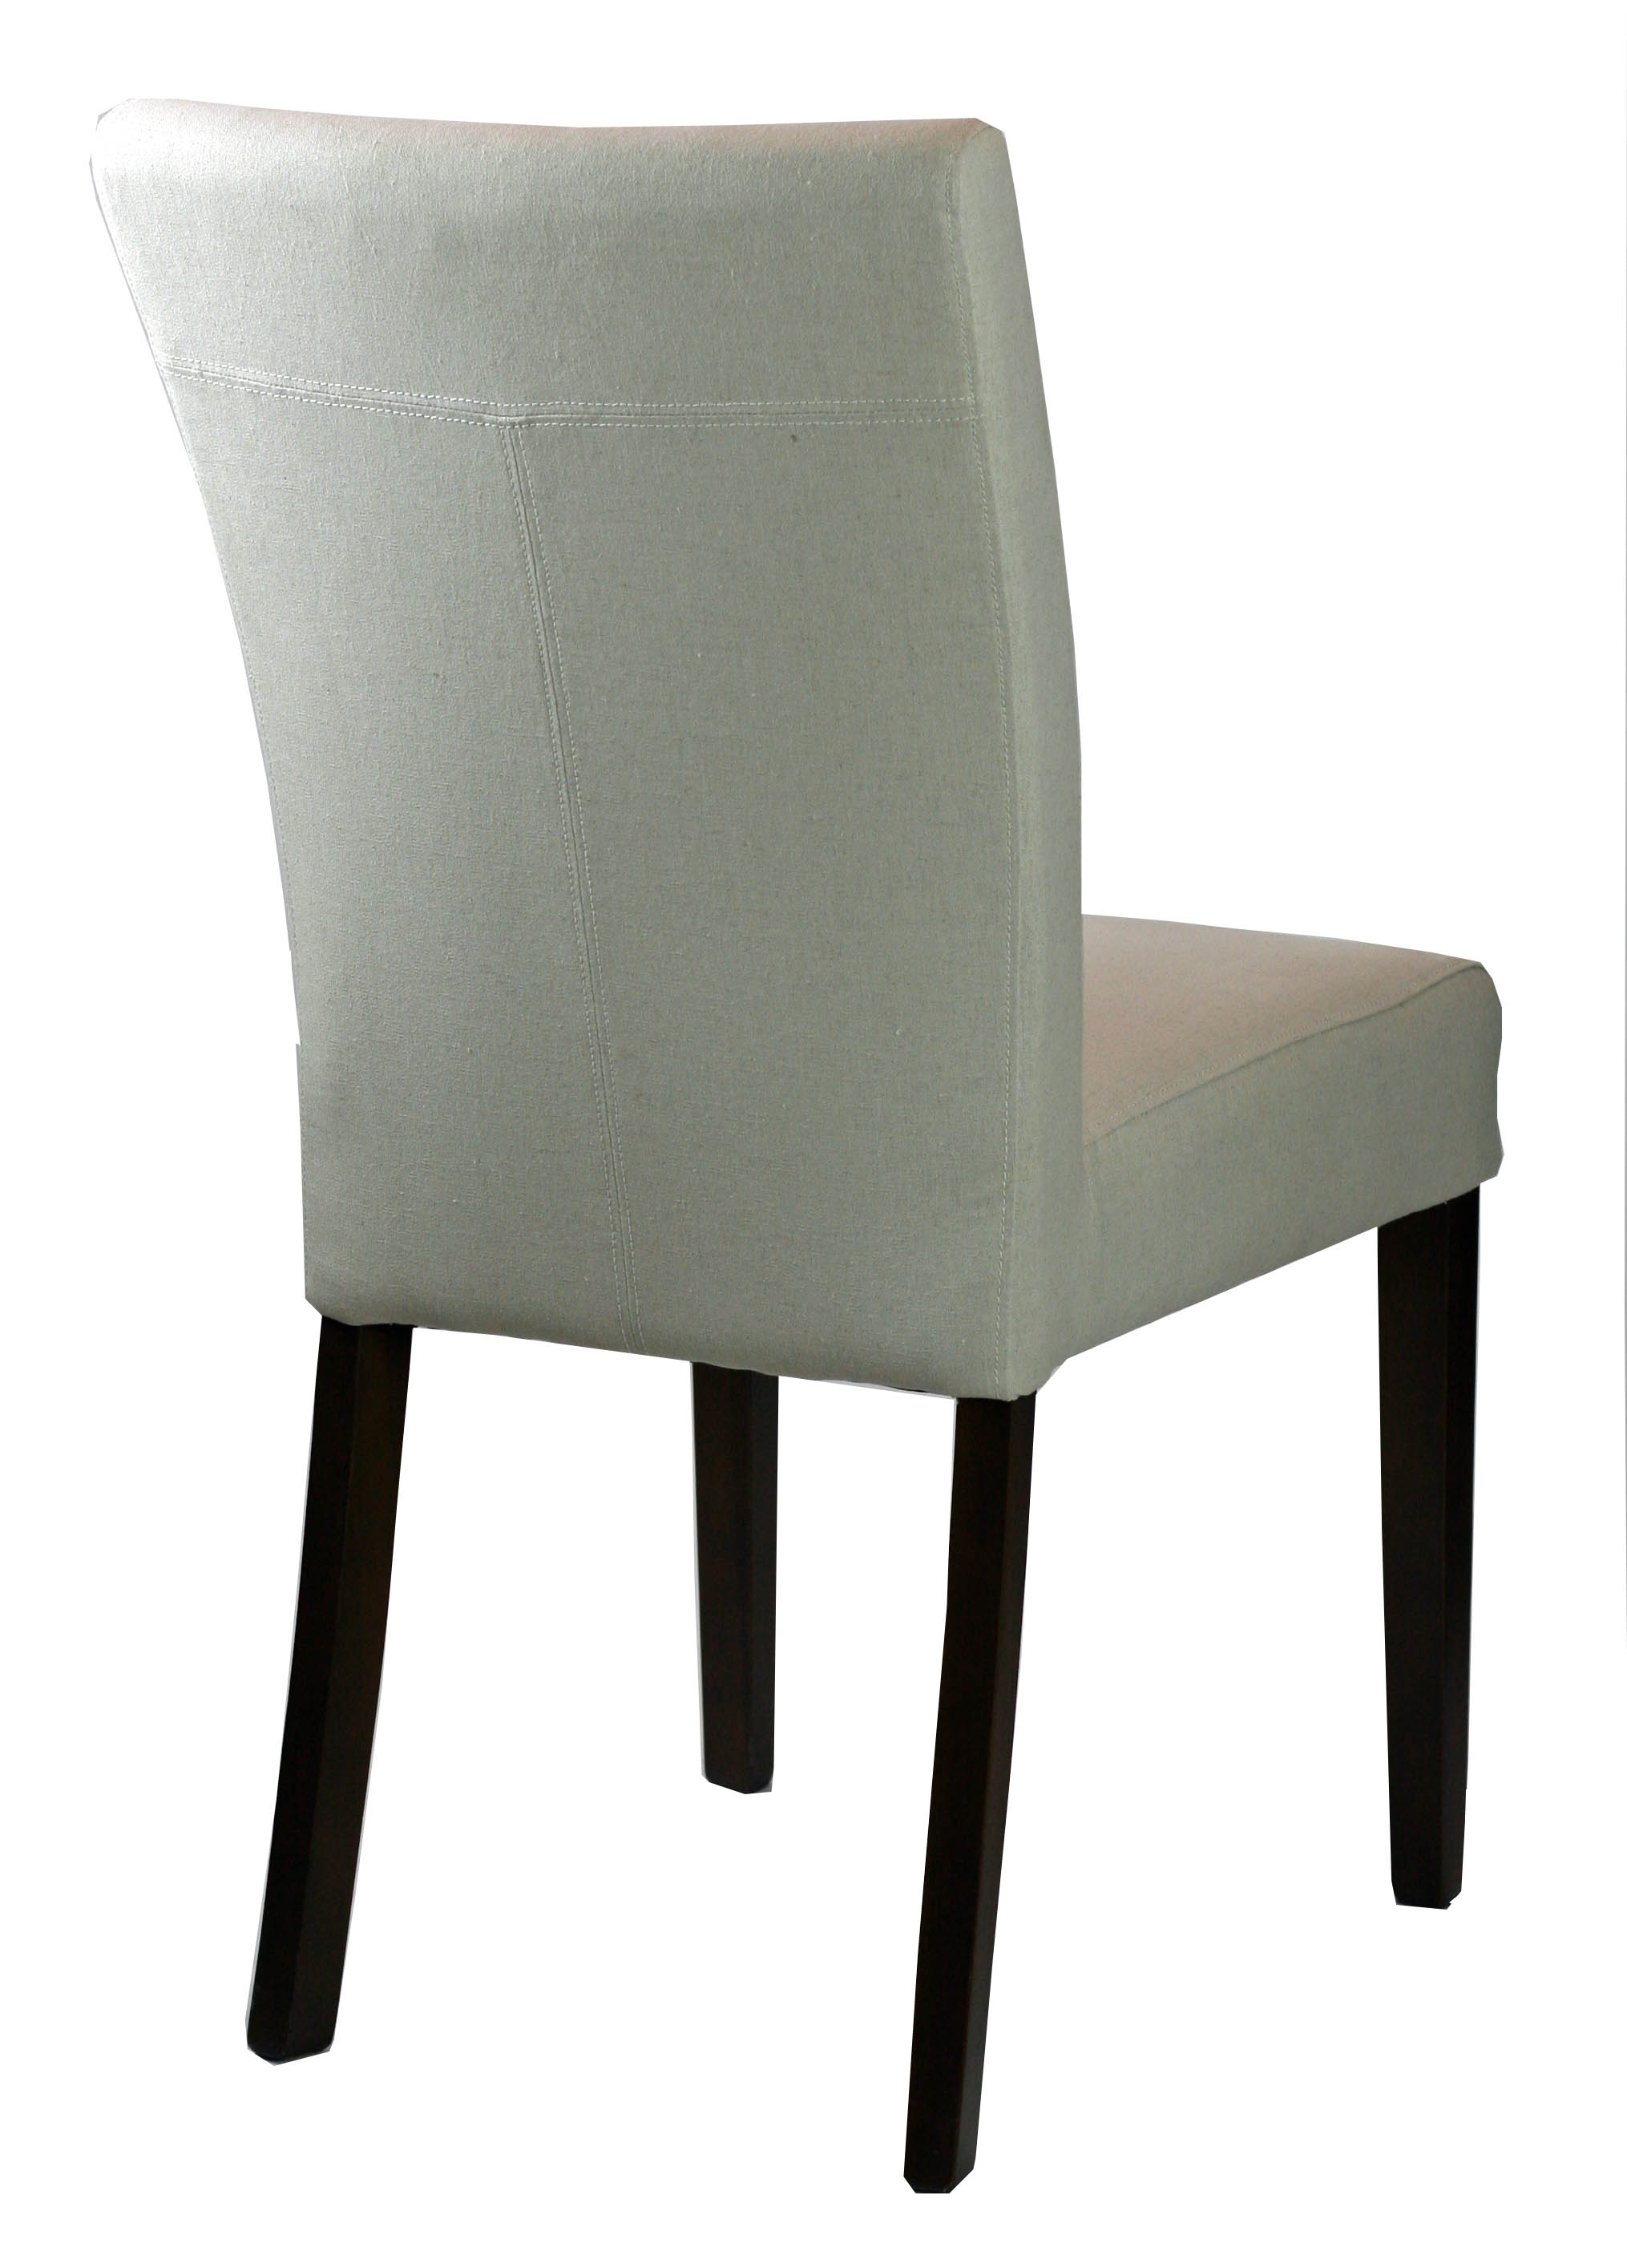 Low Back Chairs Clearance R 3260 Low Back Dining Room Chair Artefac Usa